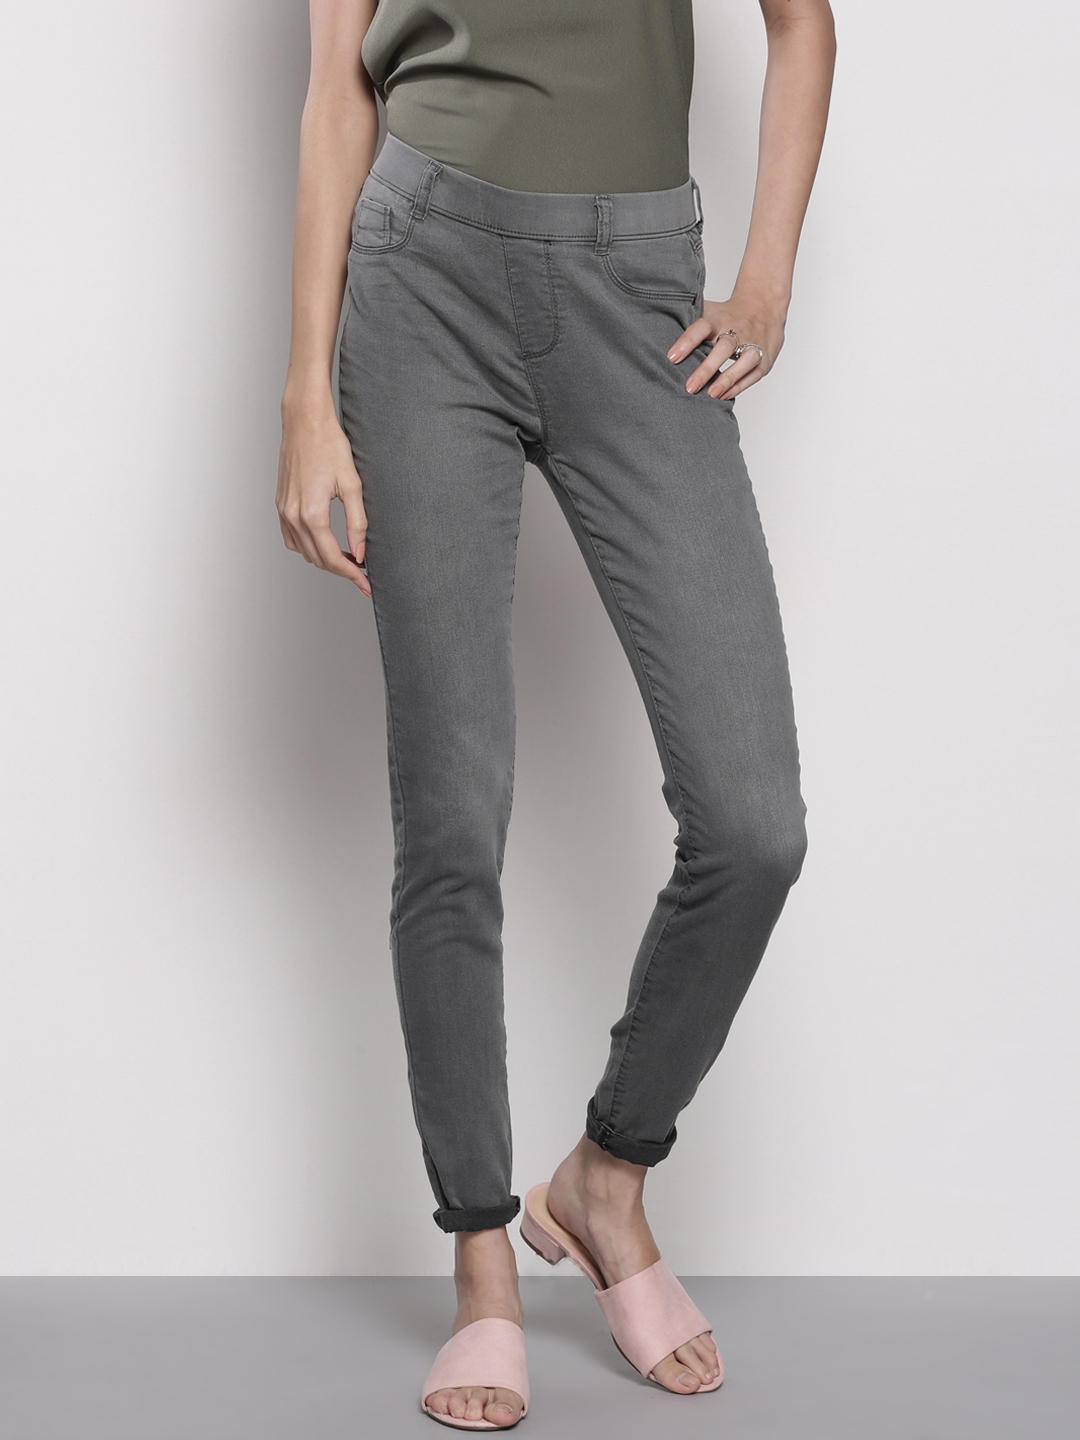 search for original 2019 best sell search for newest DOROTHY PERKINS Charcoal Grey Jeggings